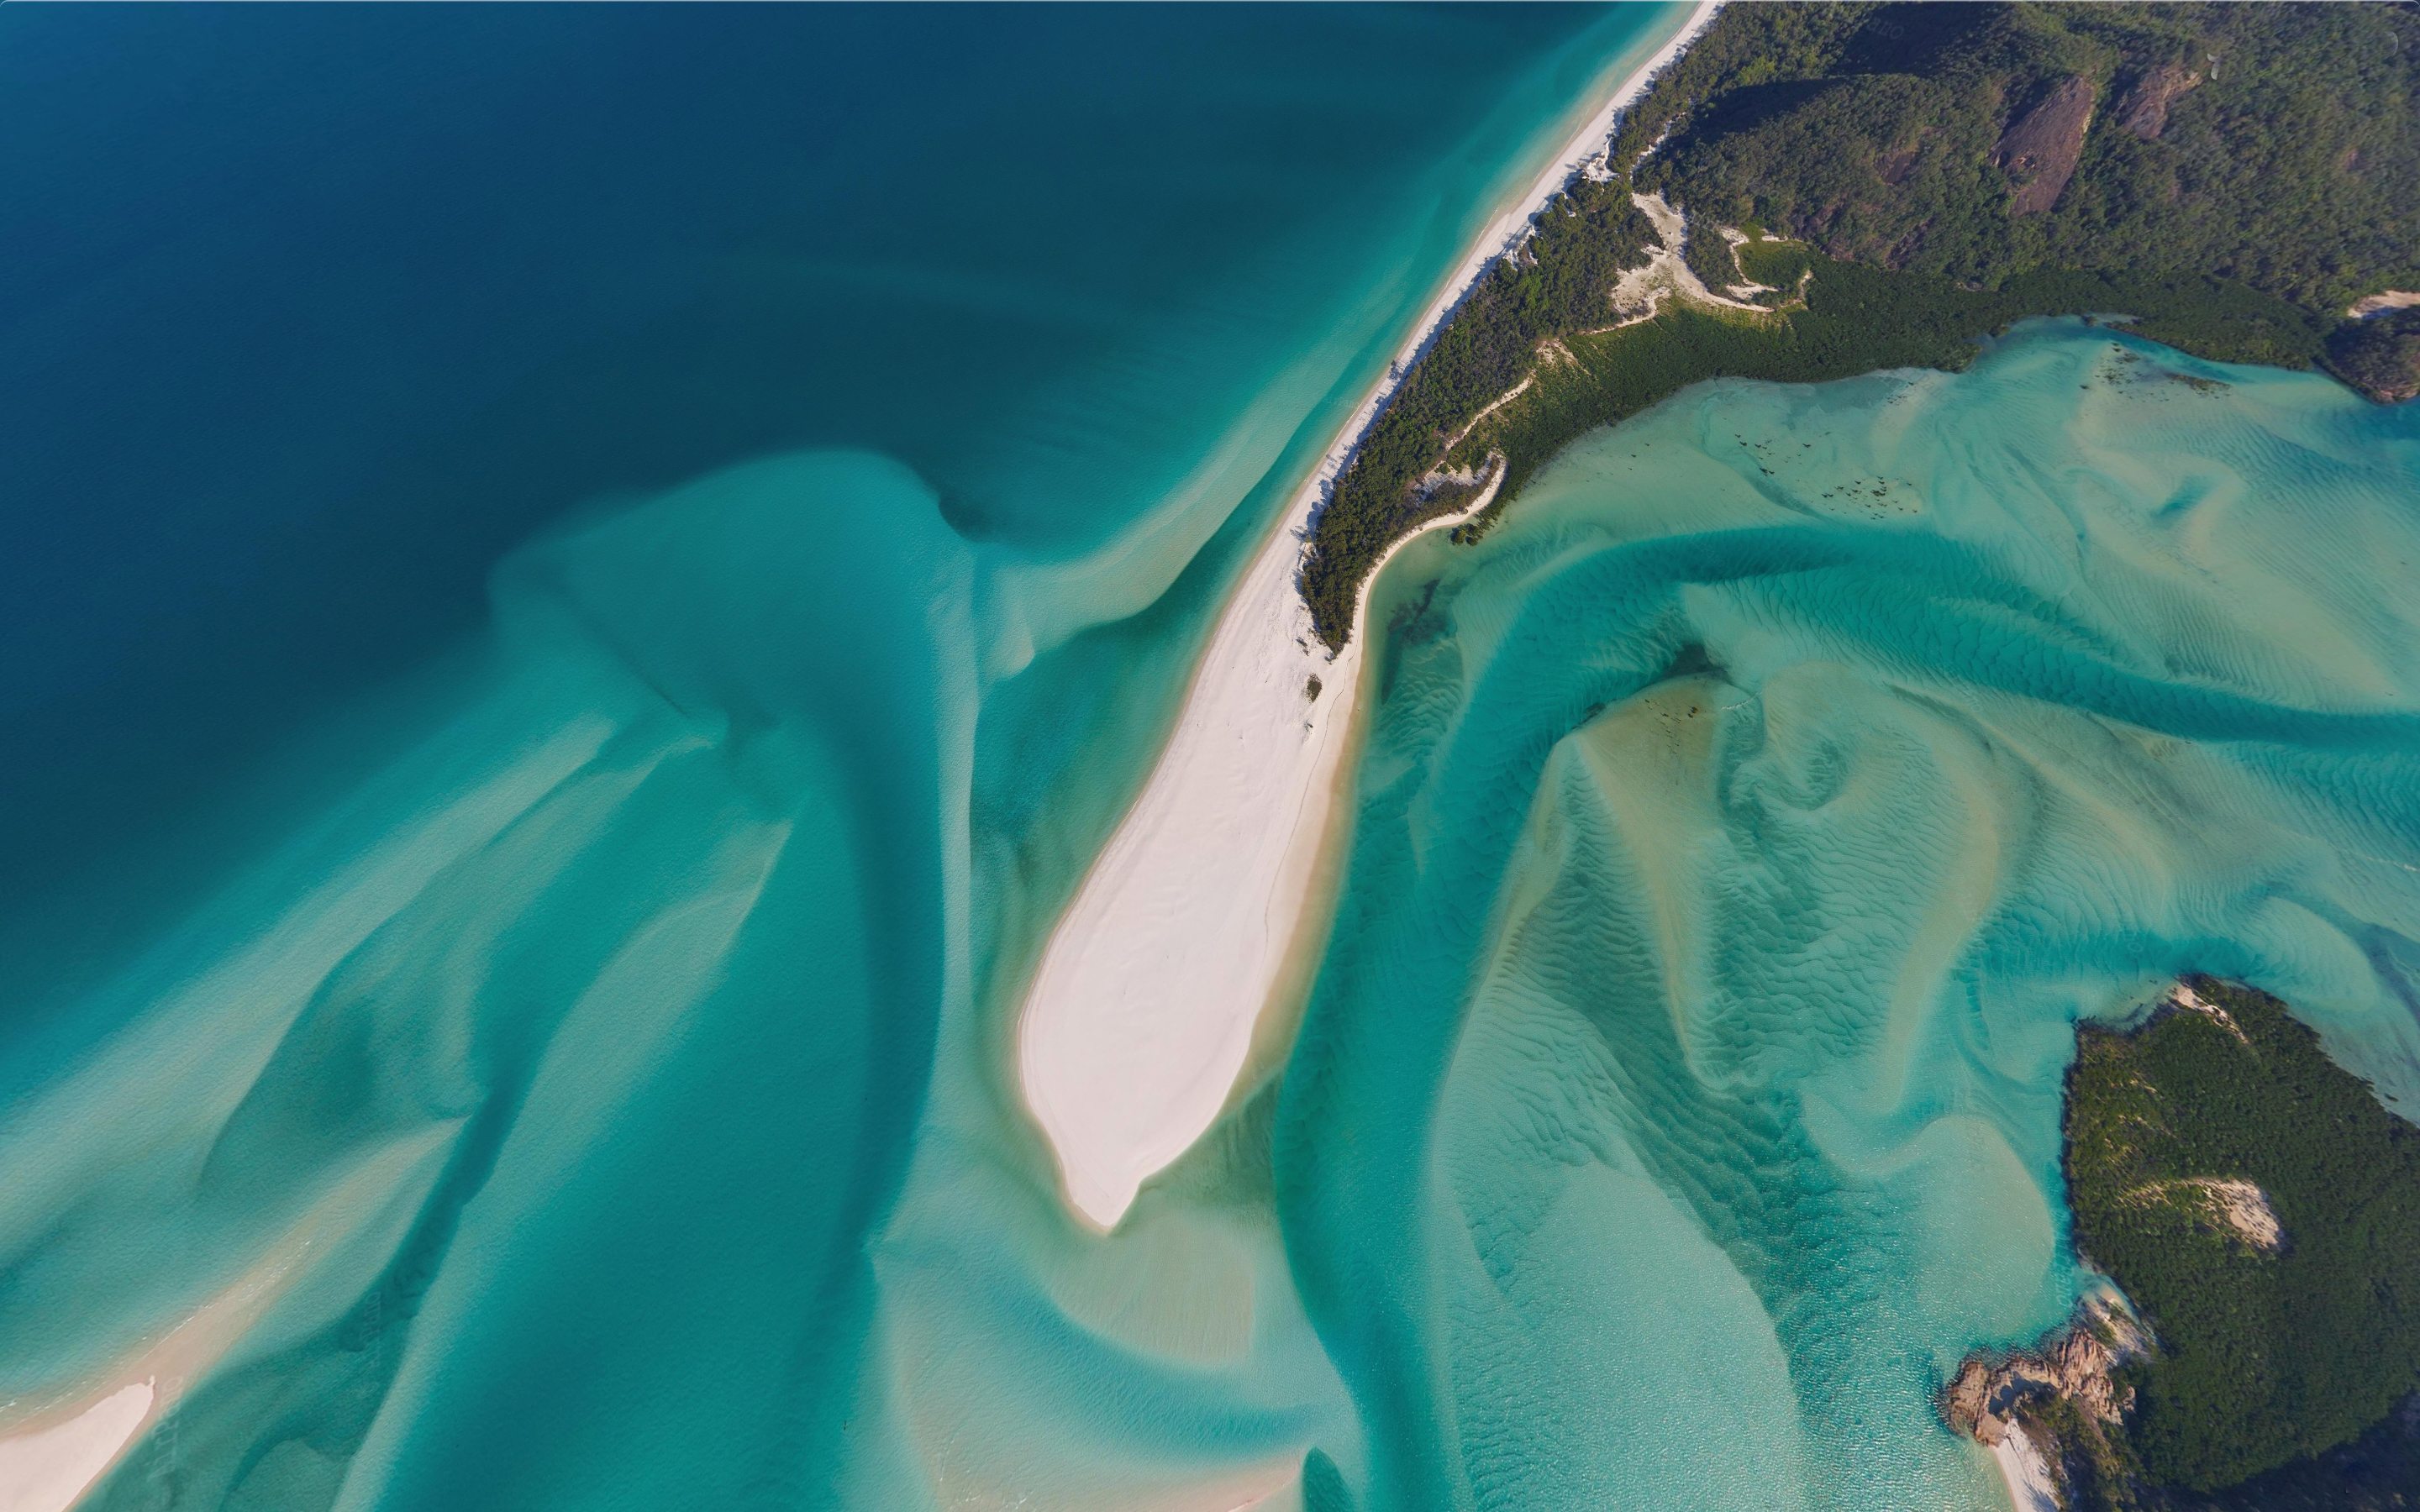 Great Barrier Reef – Australia captured from AirPano.com